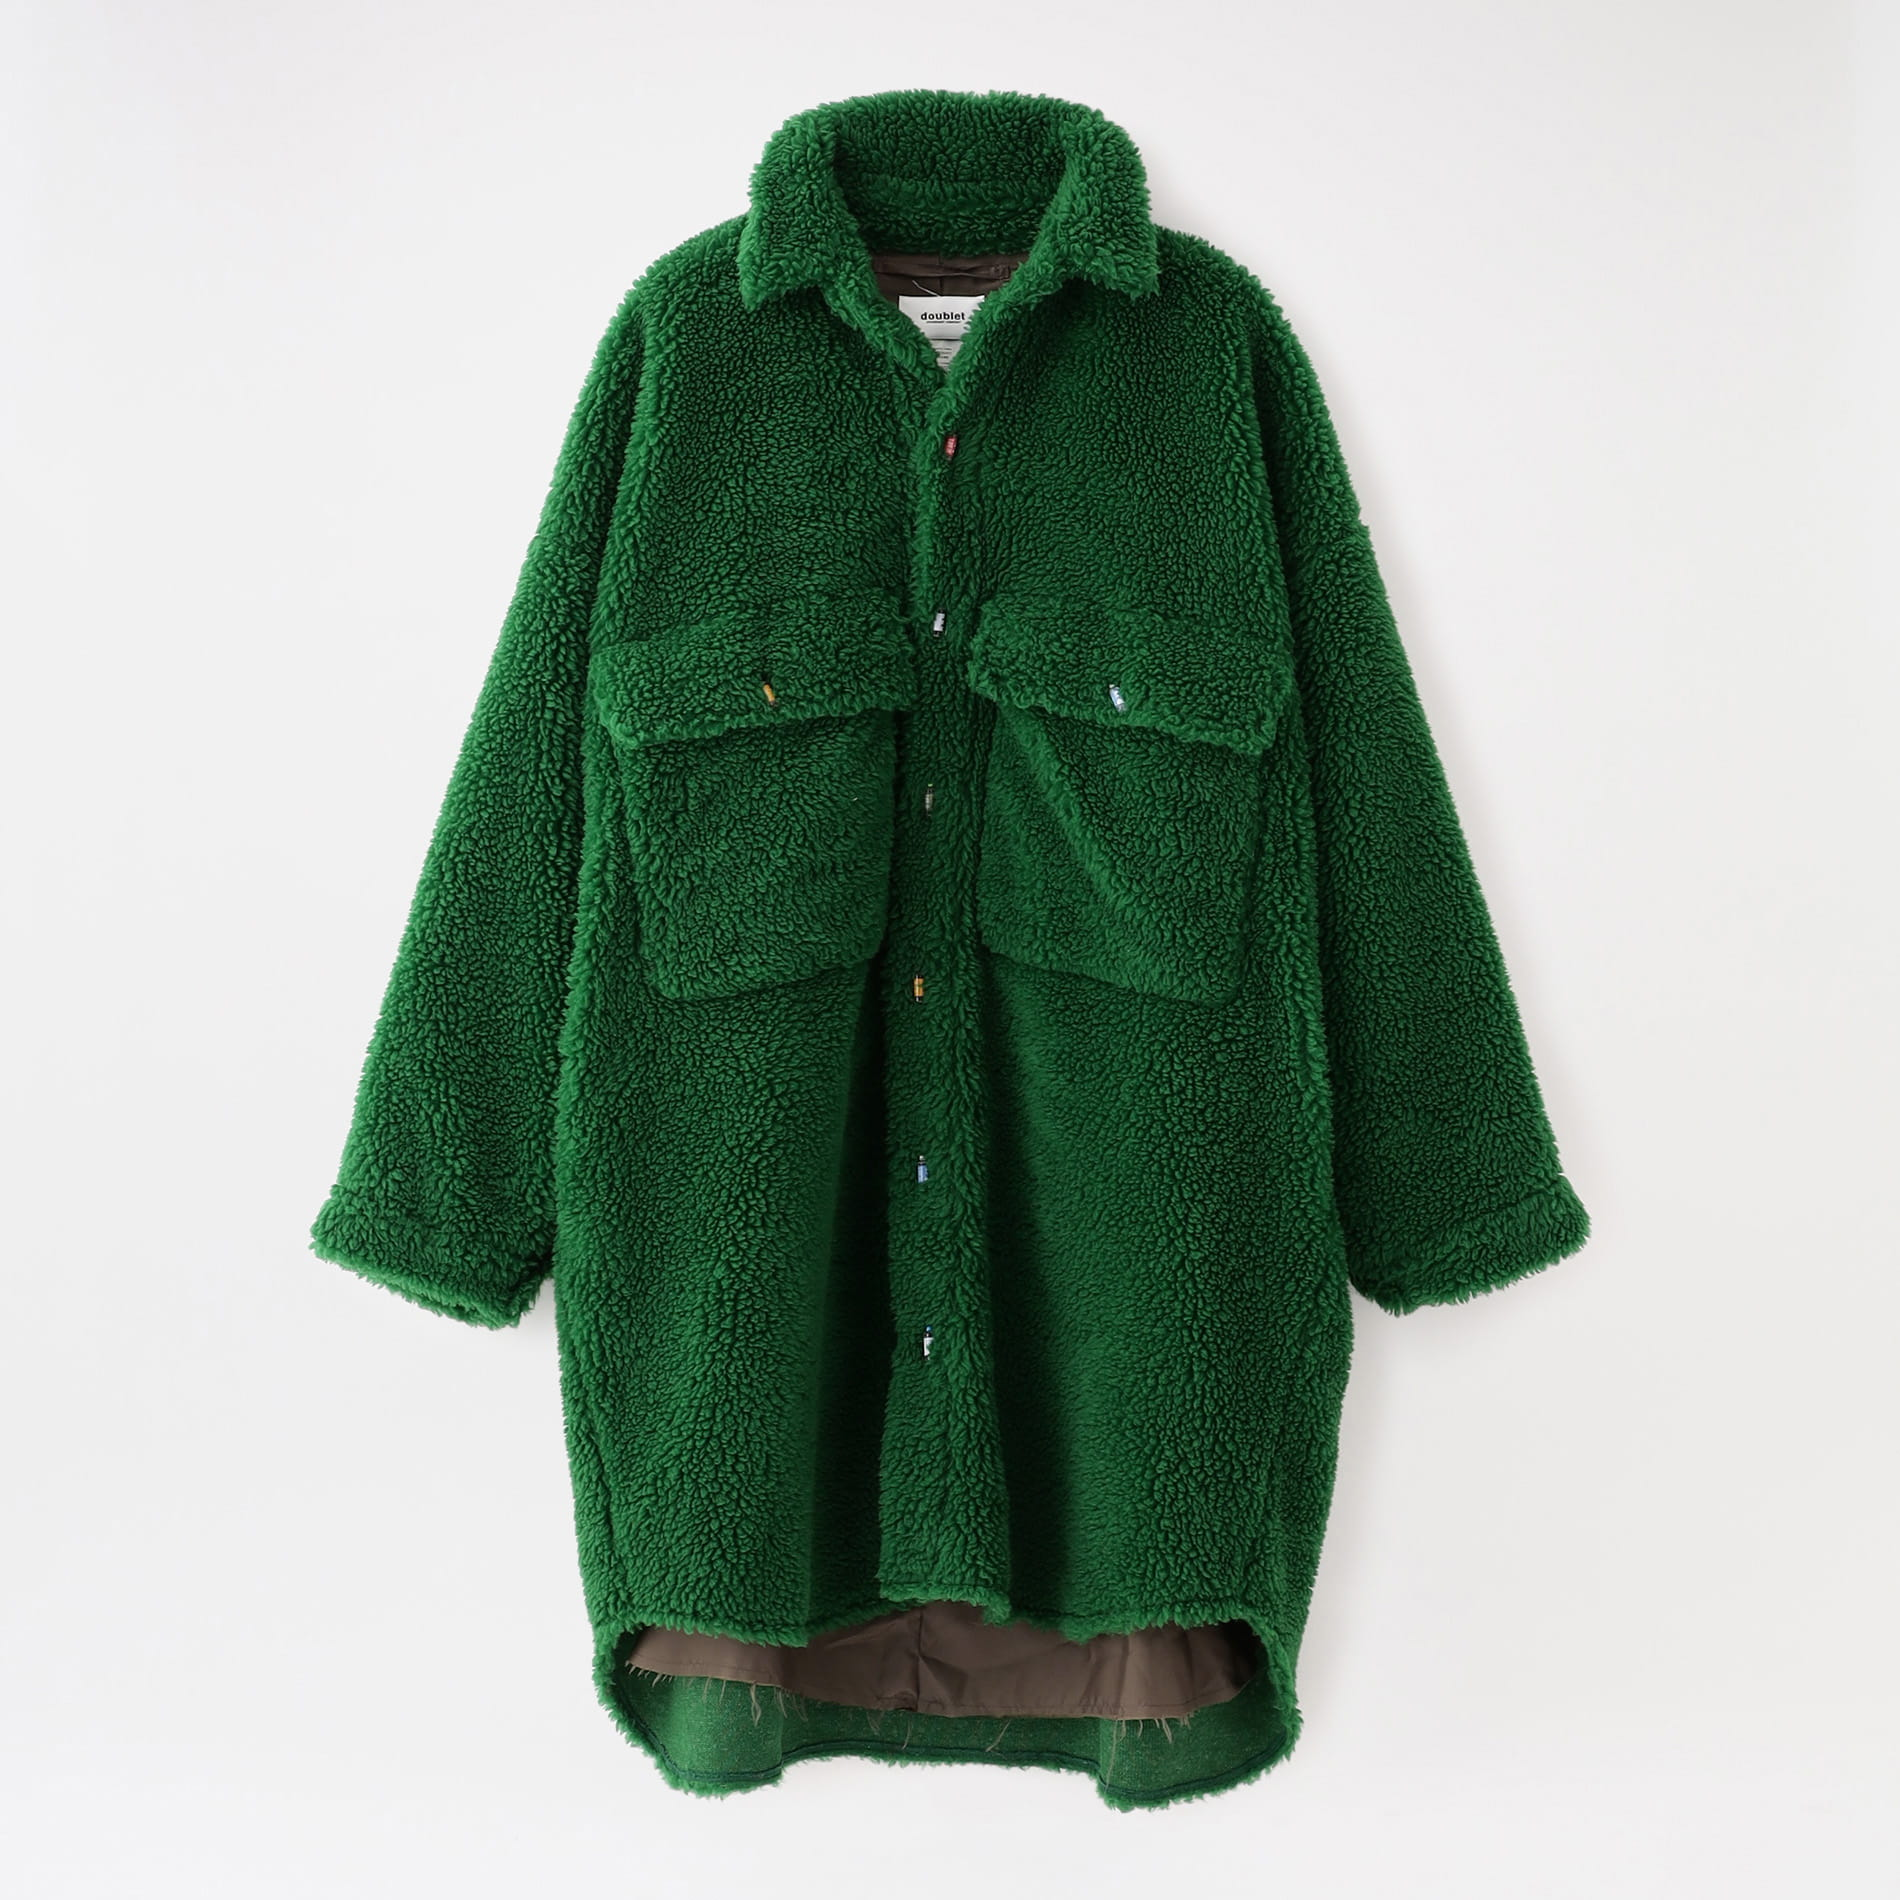 【doublet】MEN ジャケット RECYCLE FUR OVERSIZED SHIRT 21AW04CO45